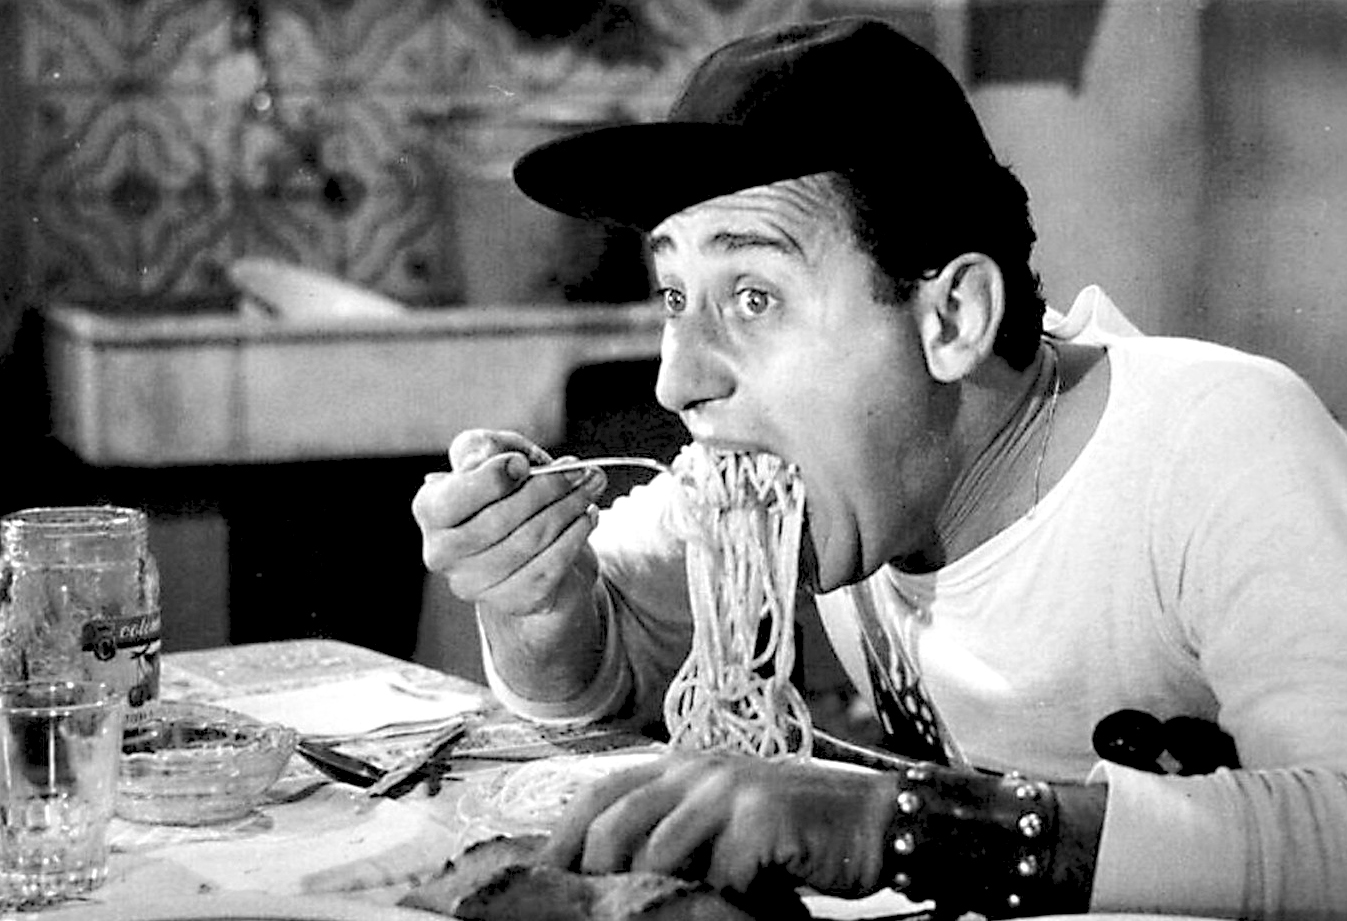 One hundred years with Alberto, the king of Italian comedy ...